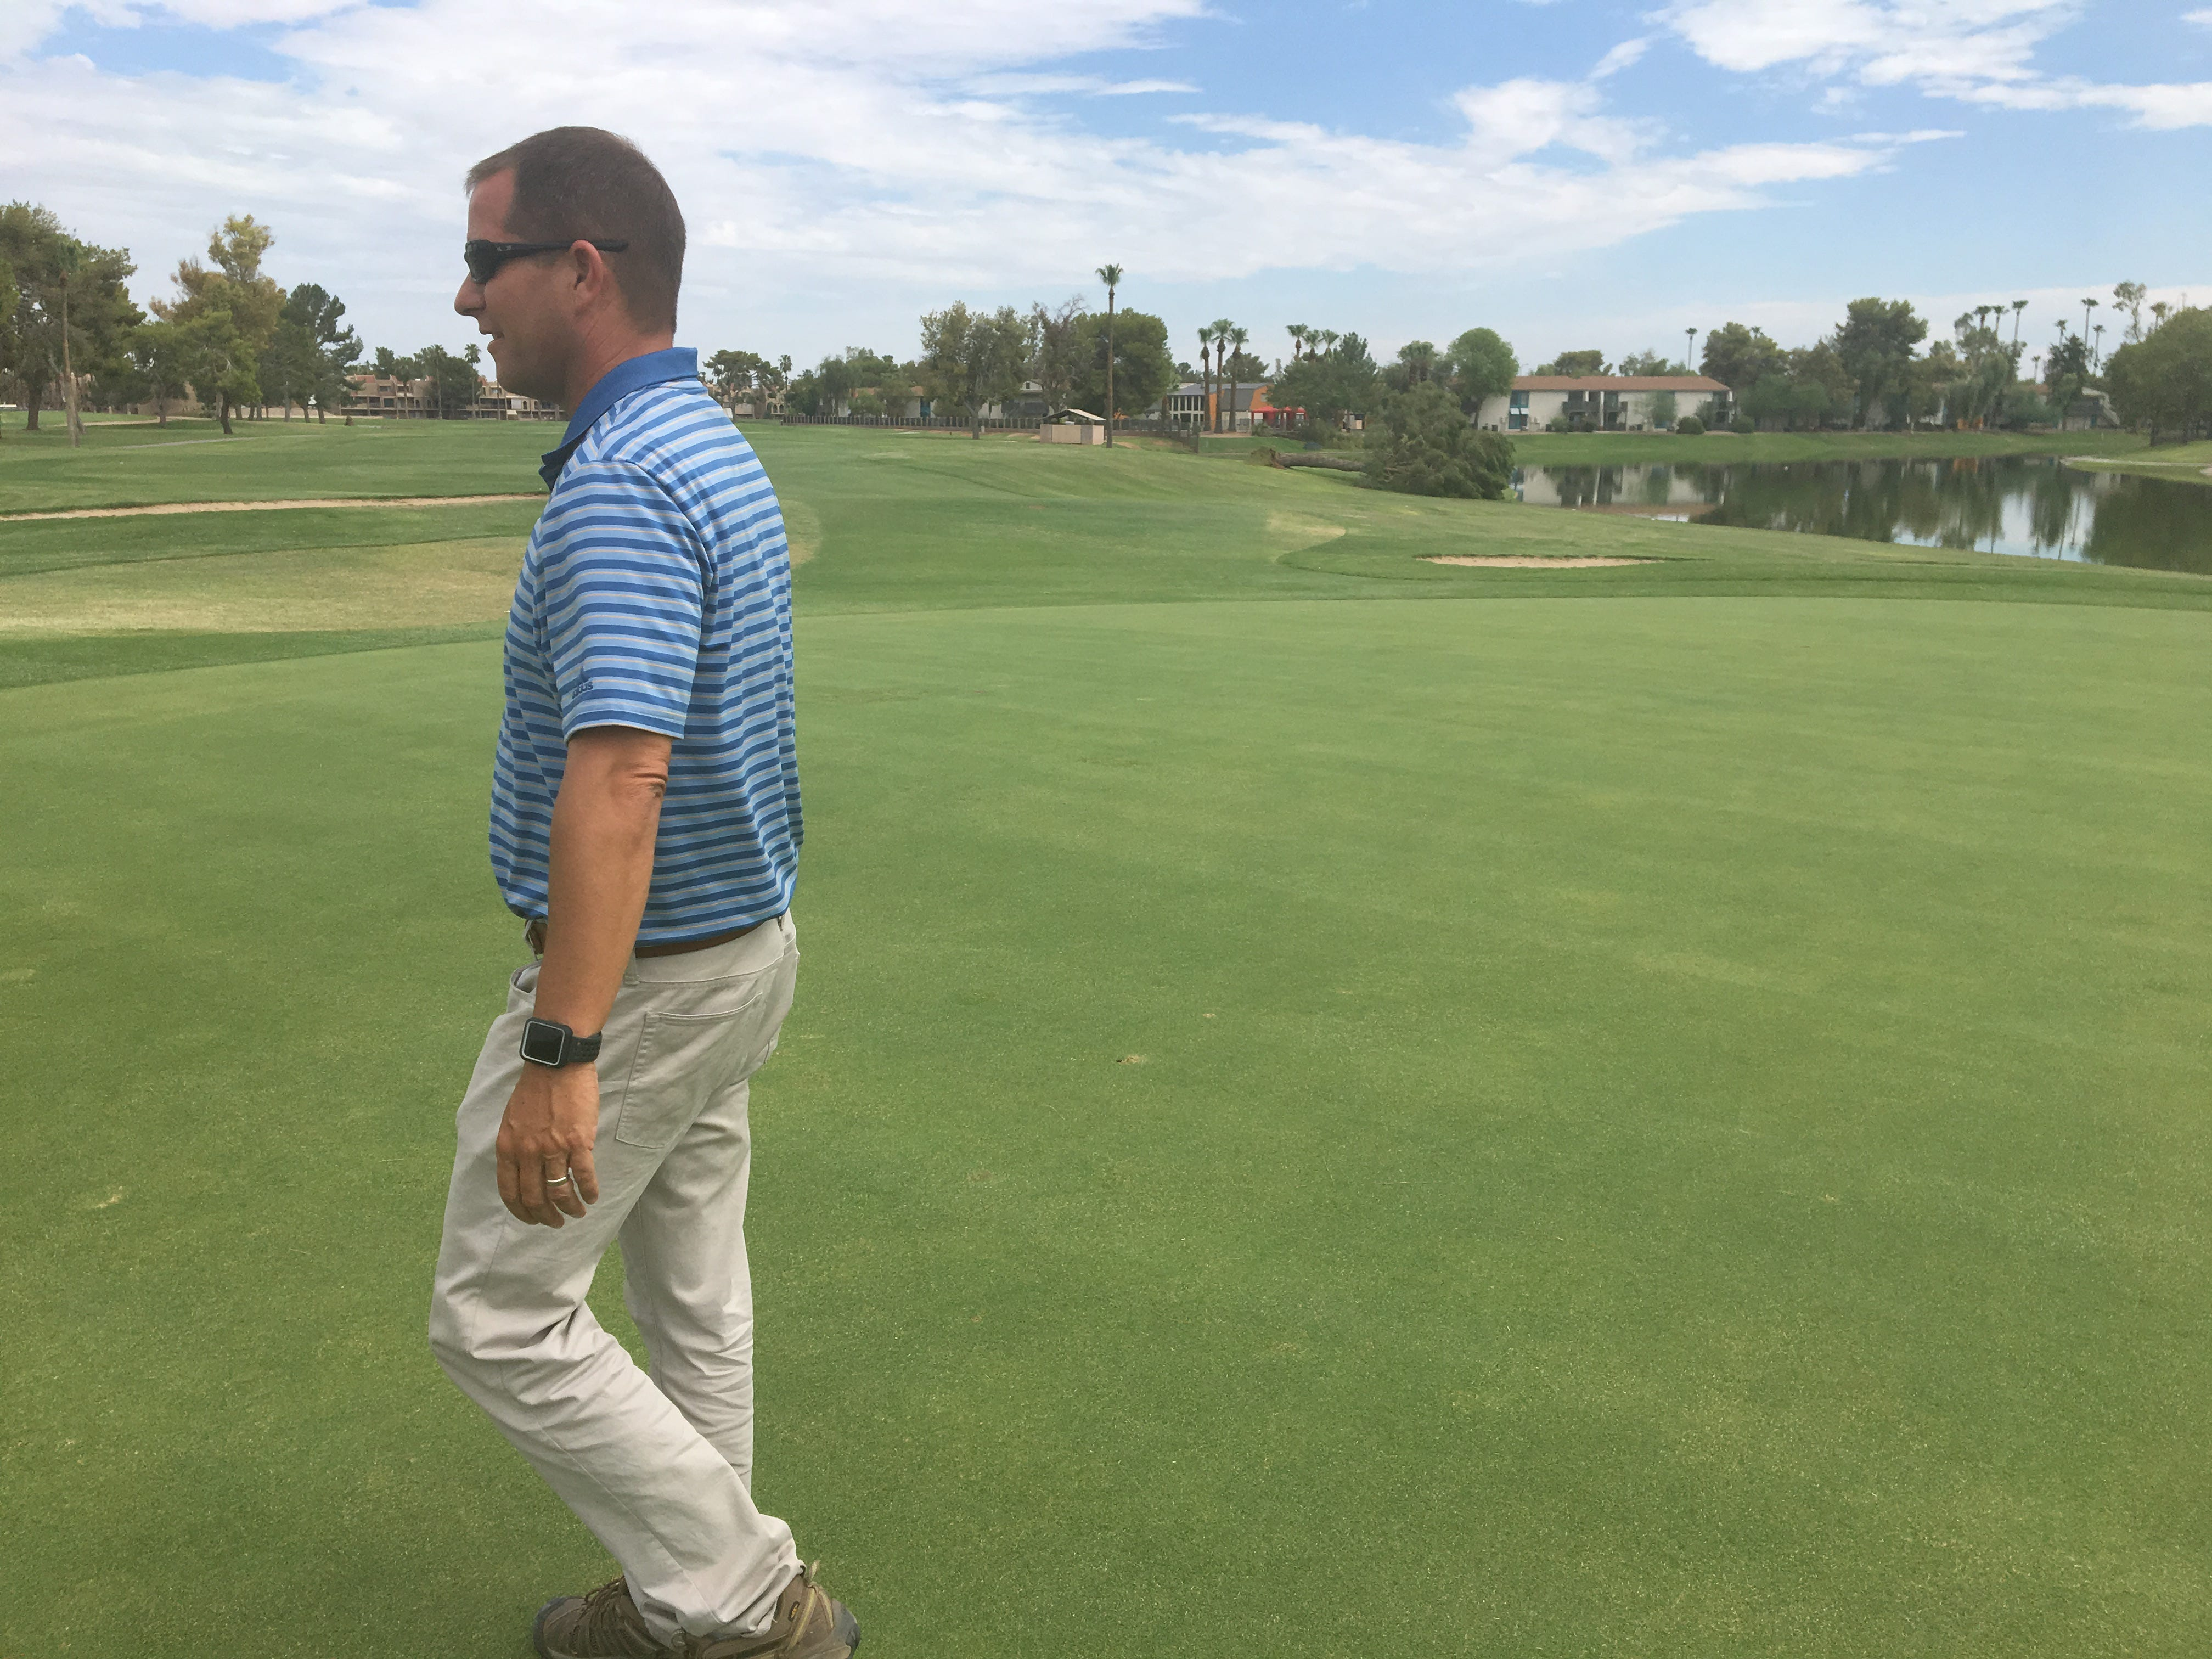 Erik Ostlund surveys storm damage at Dobson Ranch Golf Course. The city-run course lost 57 trees in one week during August 2018.